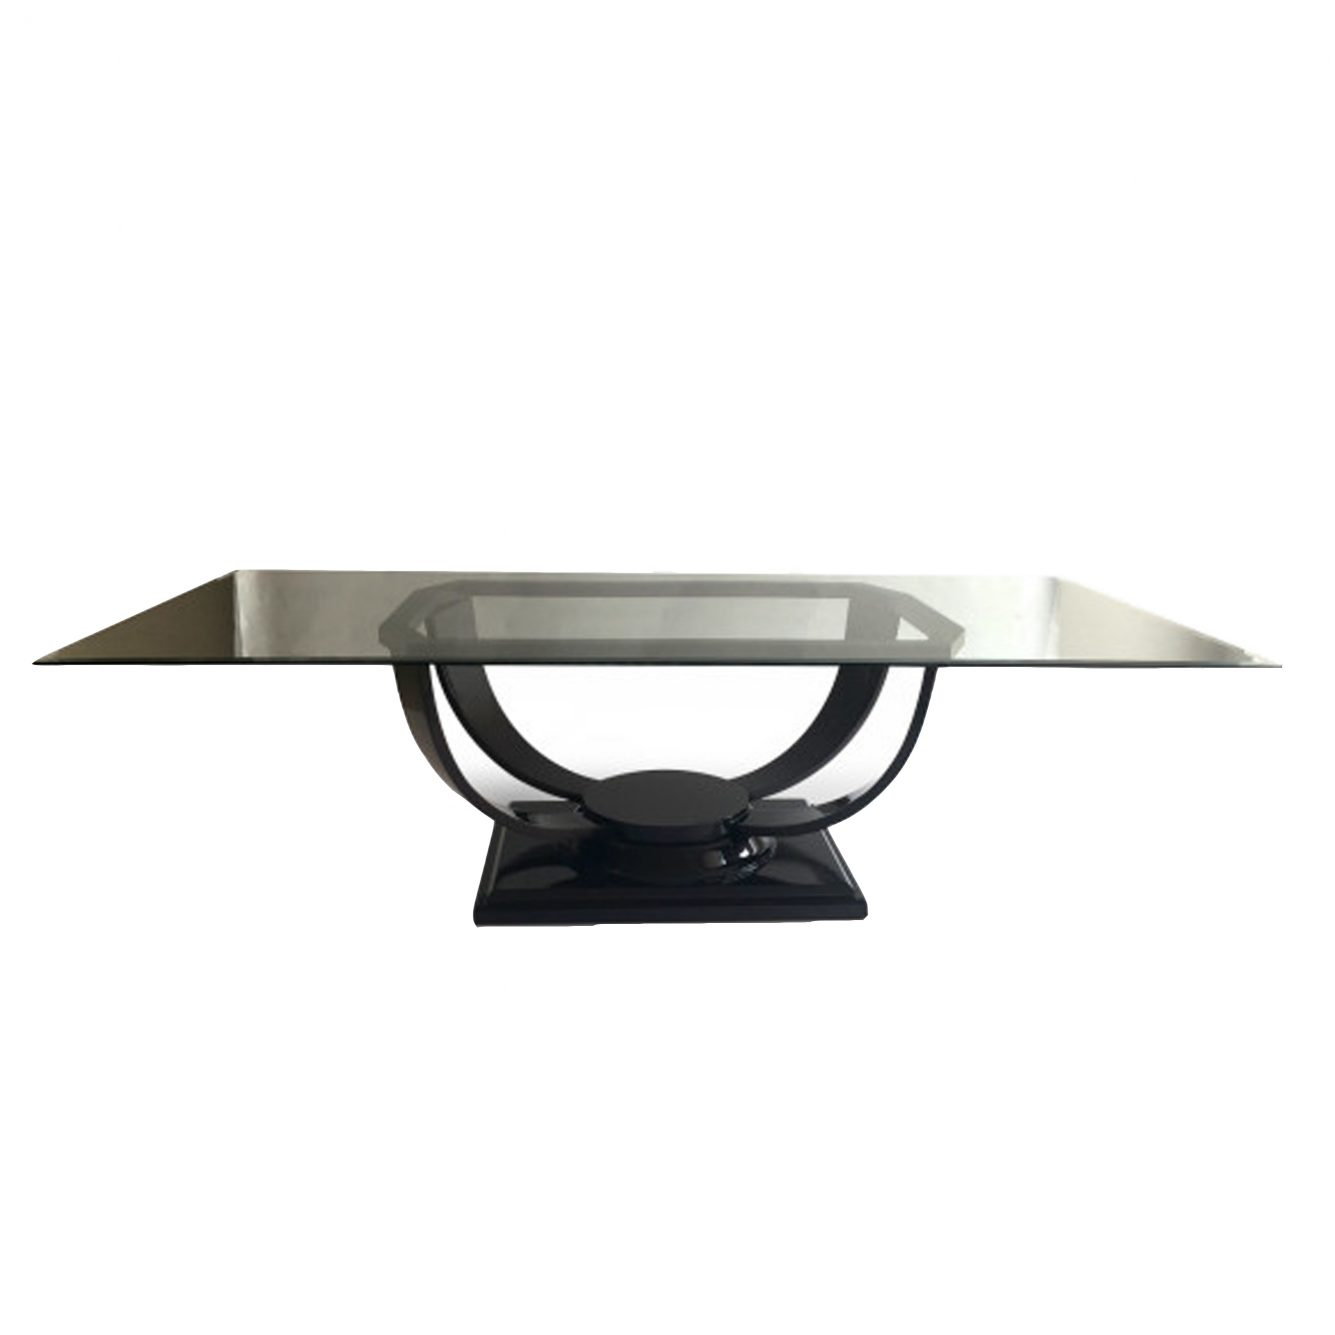 House Haven Dining Tables 0004 Photo 2017 01 13 11 46 04 600x450